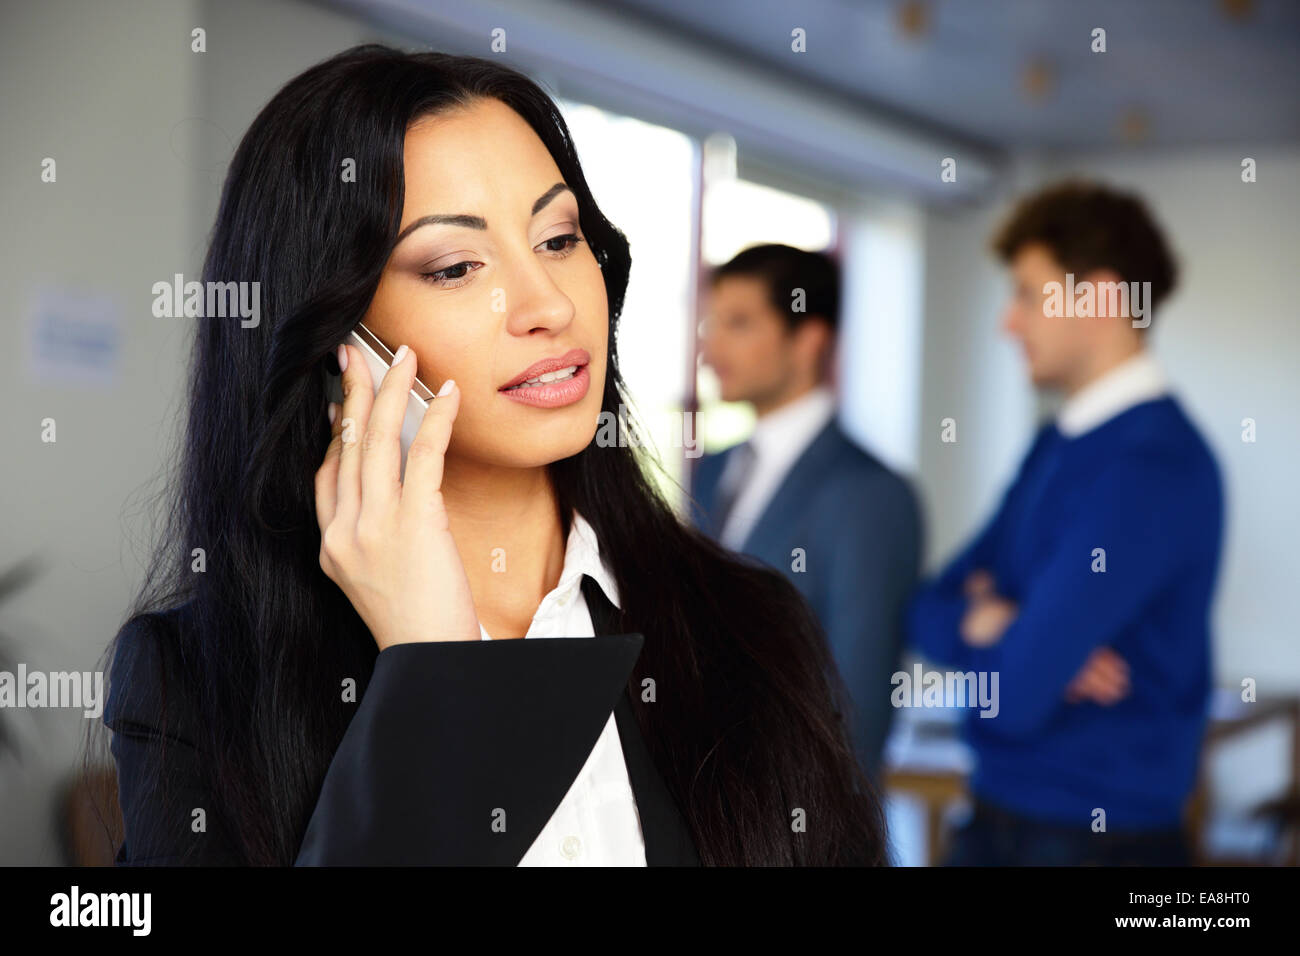 Serious businesswoman talking on the phone with colleagues on background Stock Photo